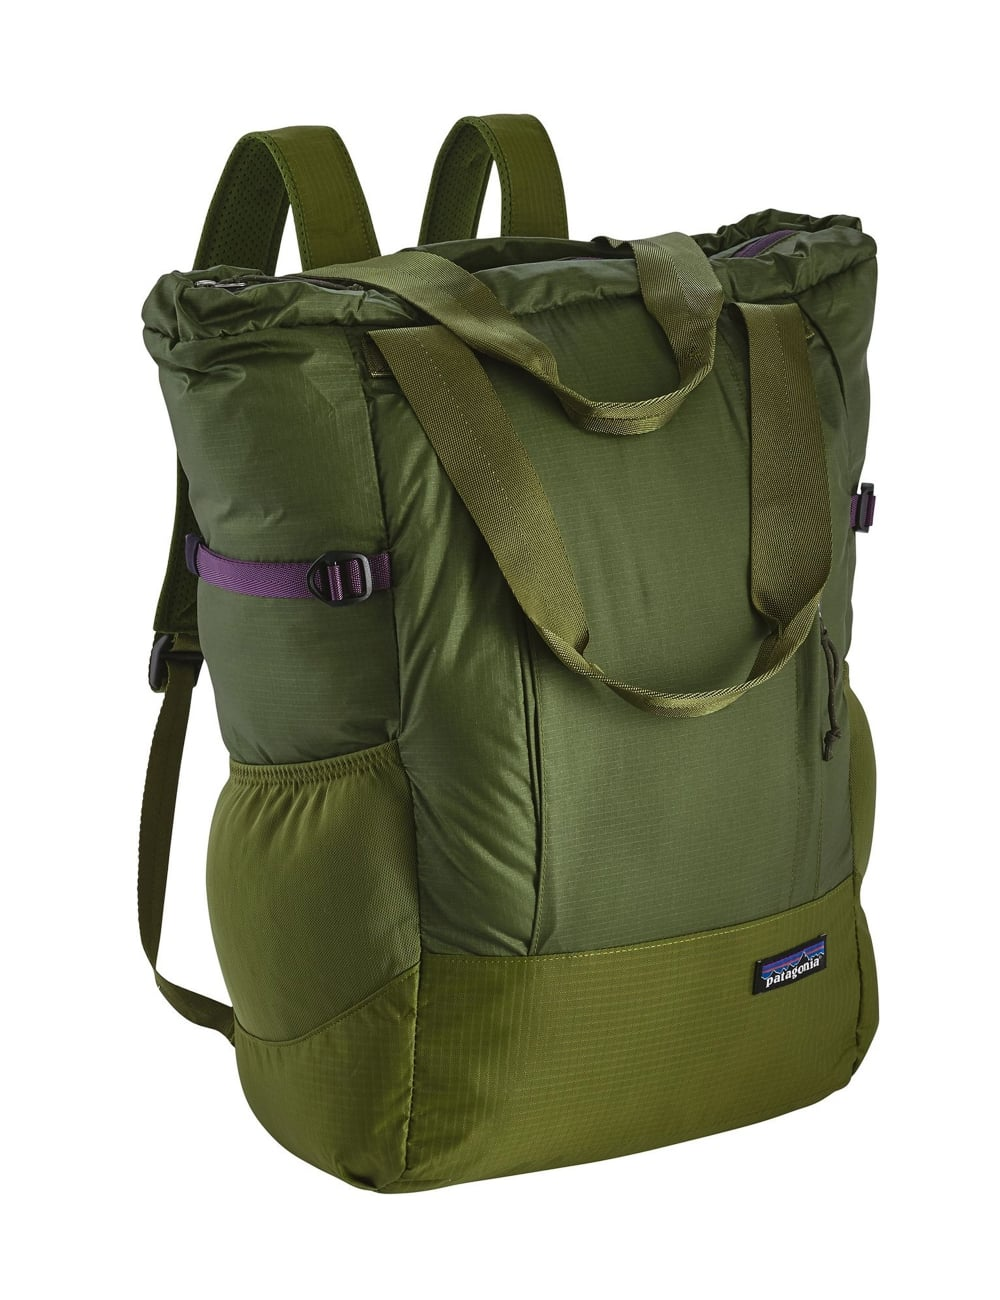 Lightweight Travel Tote Bag Sprouted Green